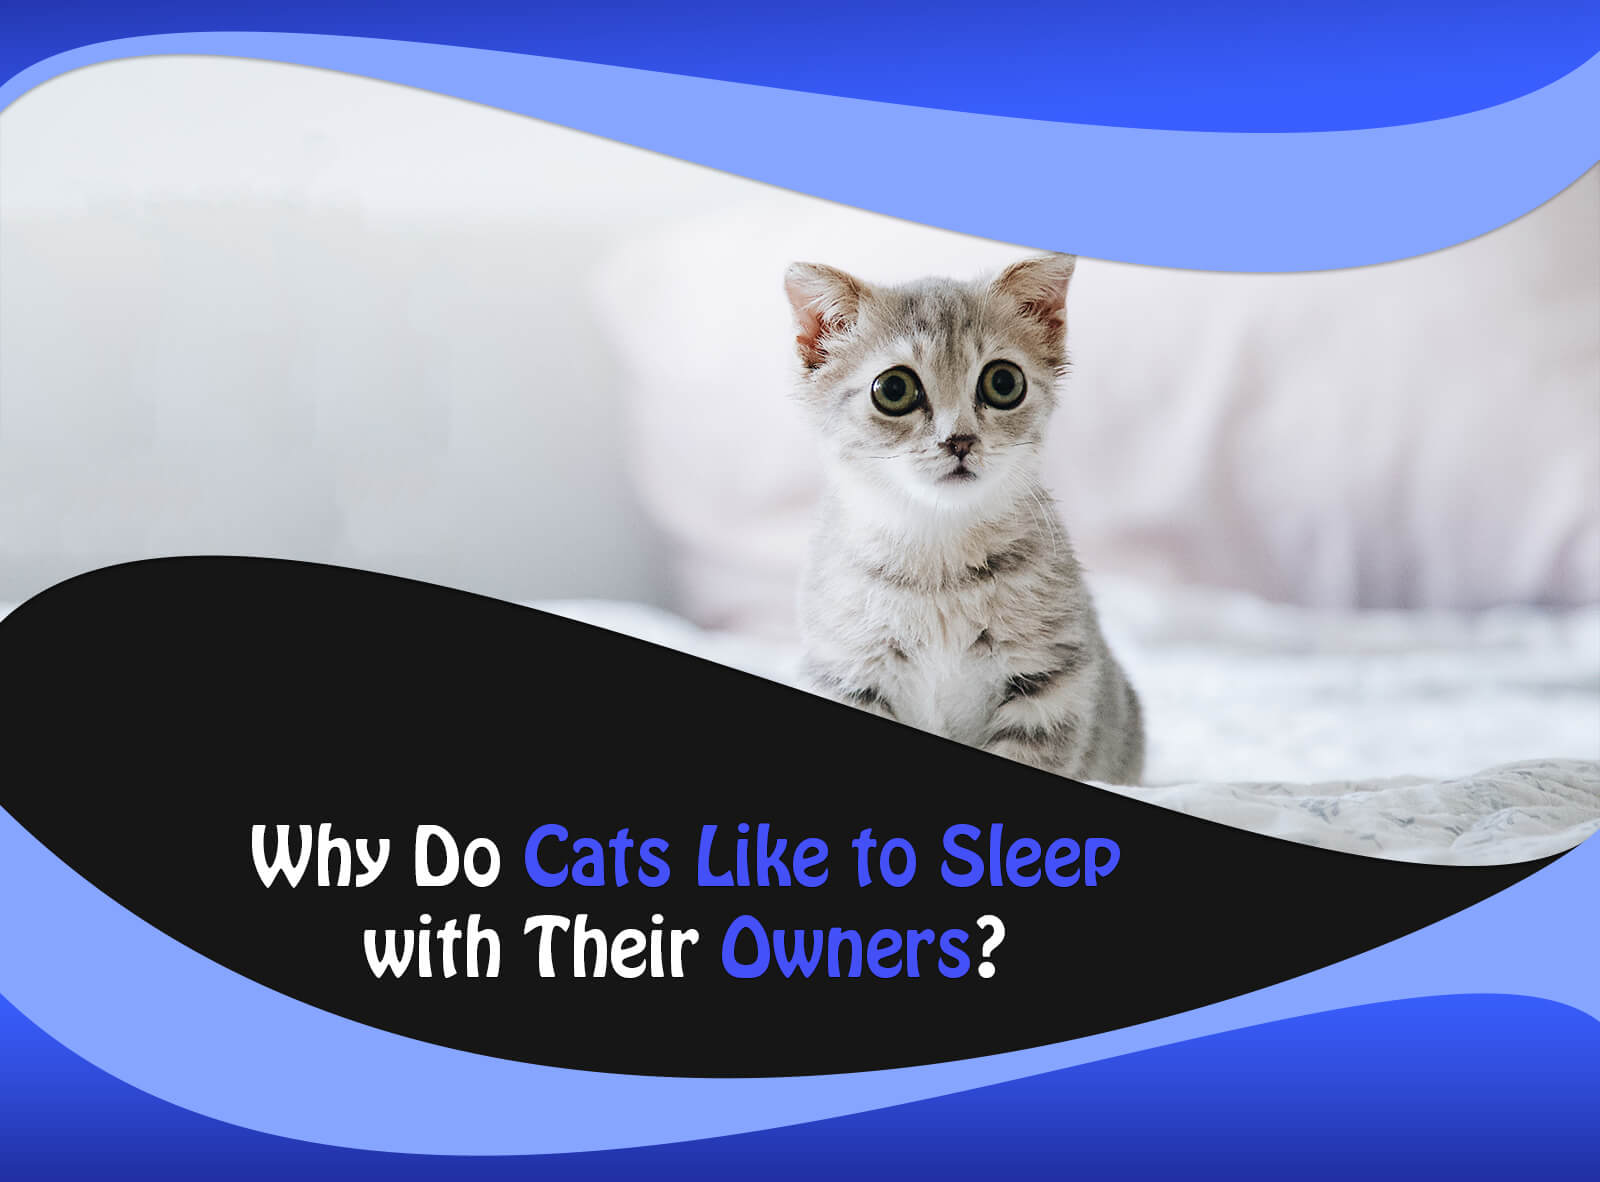 Why Do Cats Like to Sleep with Their Owners?